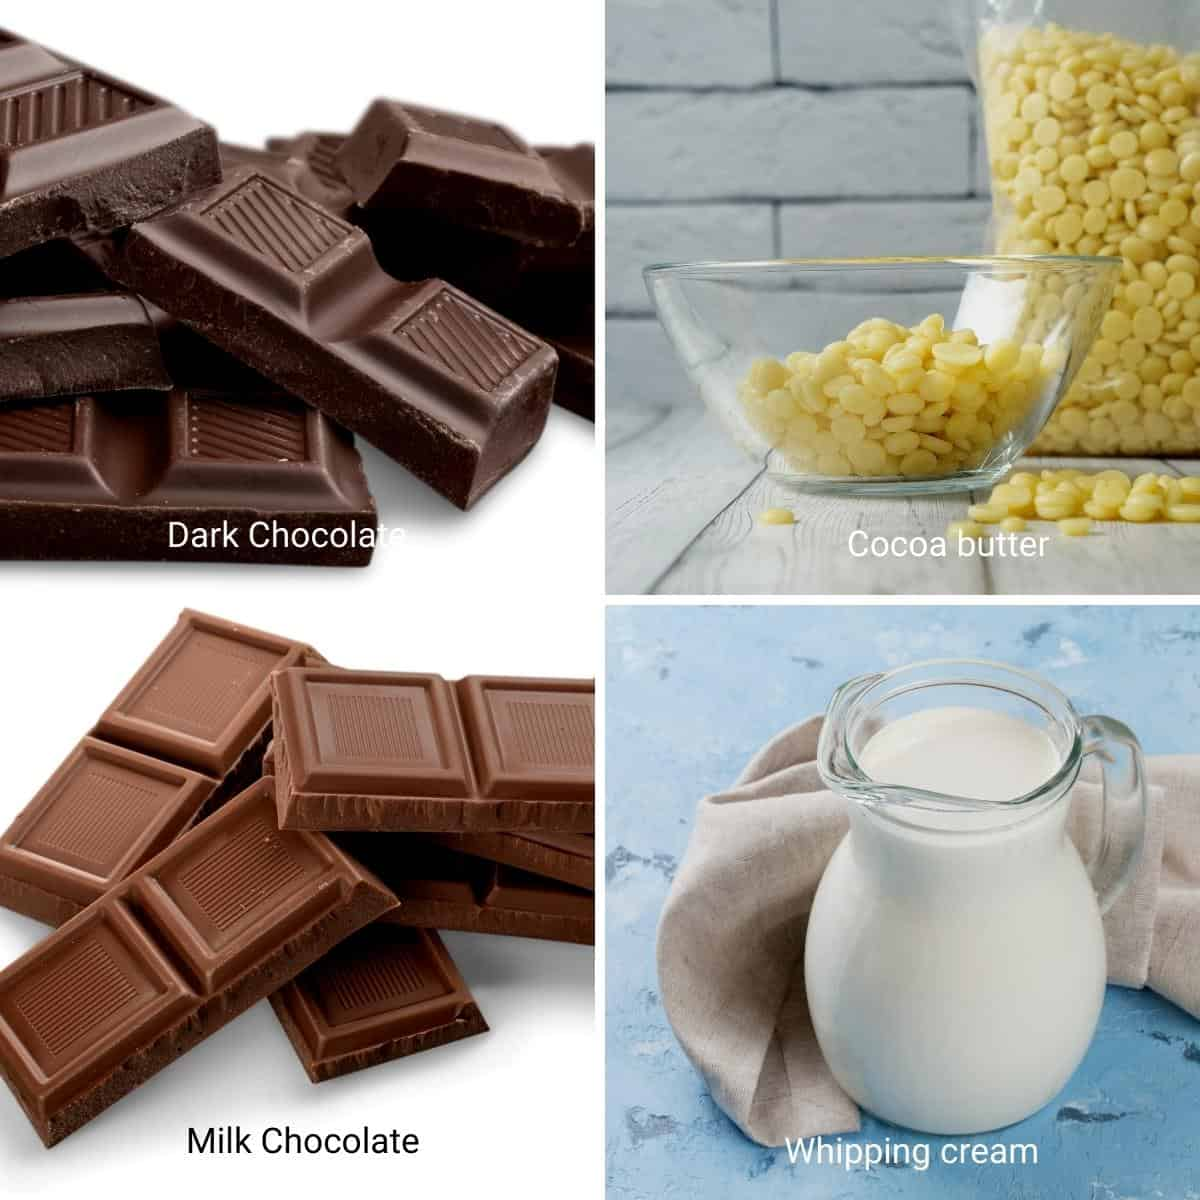 Ingredients for chocolate bonbons.